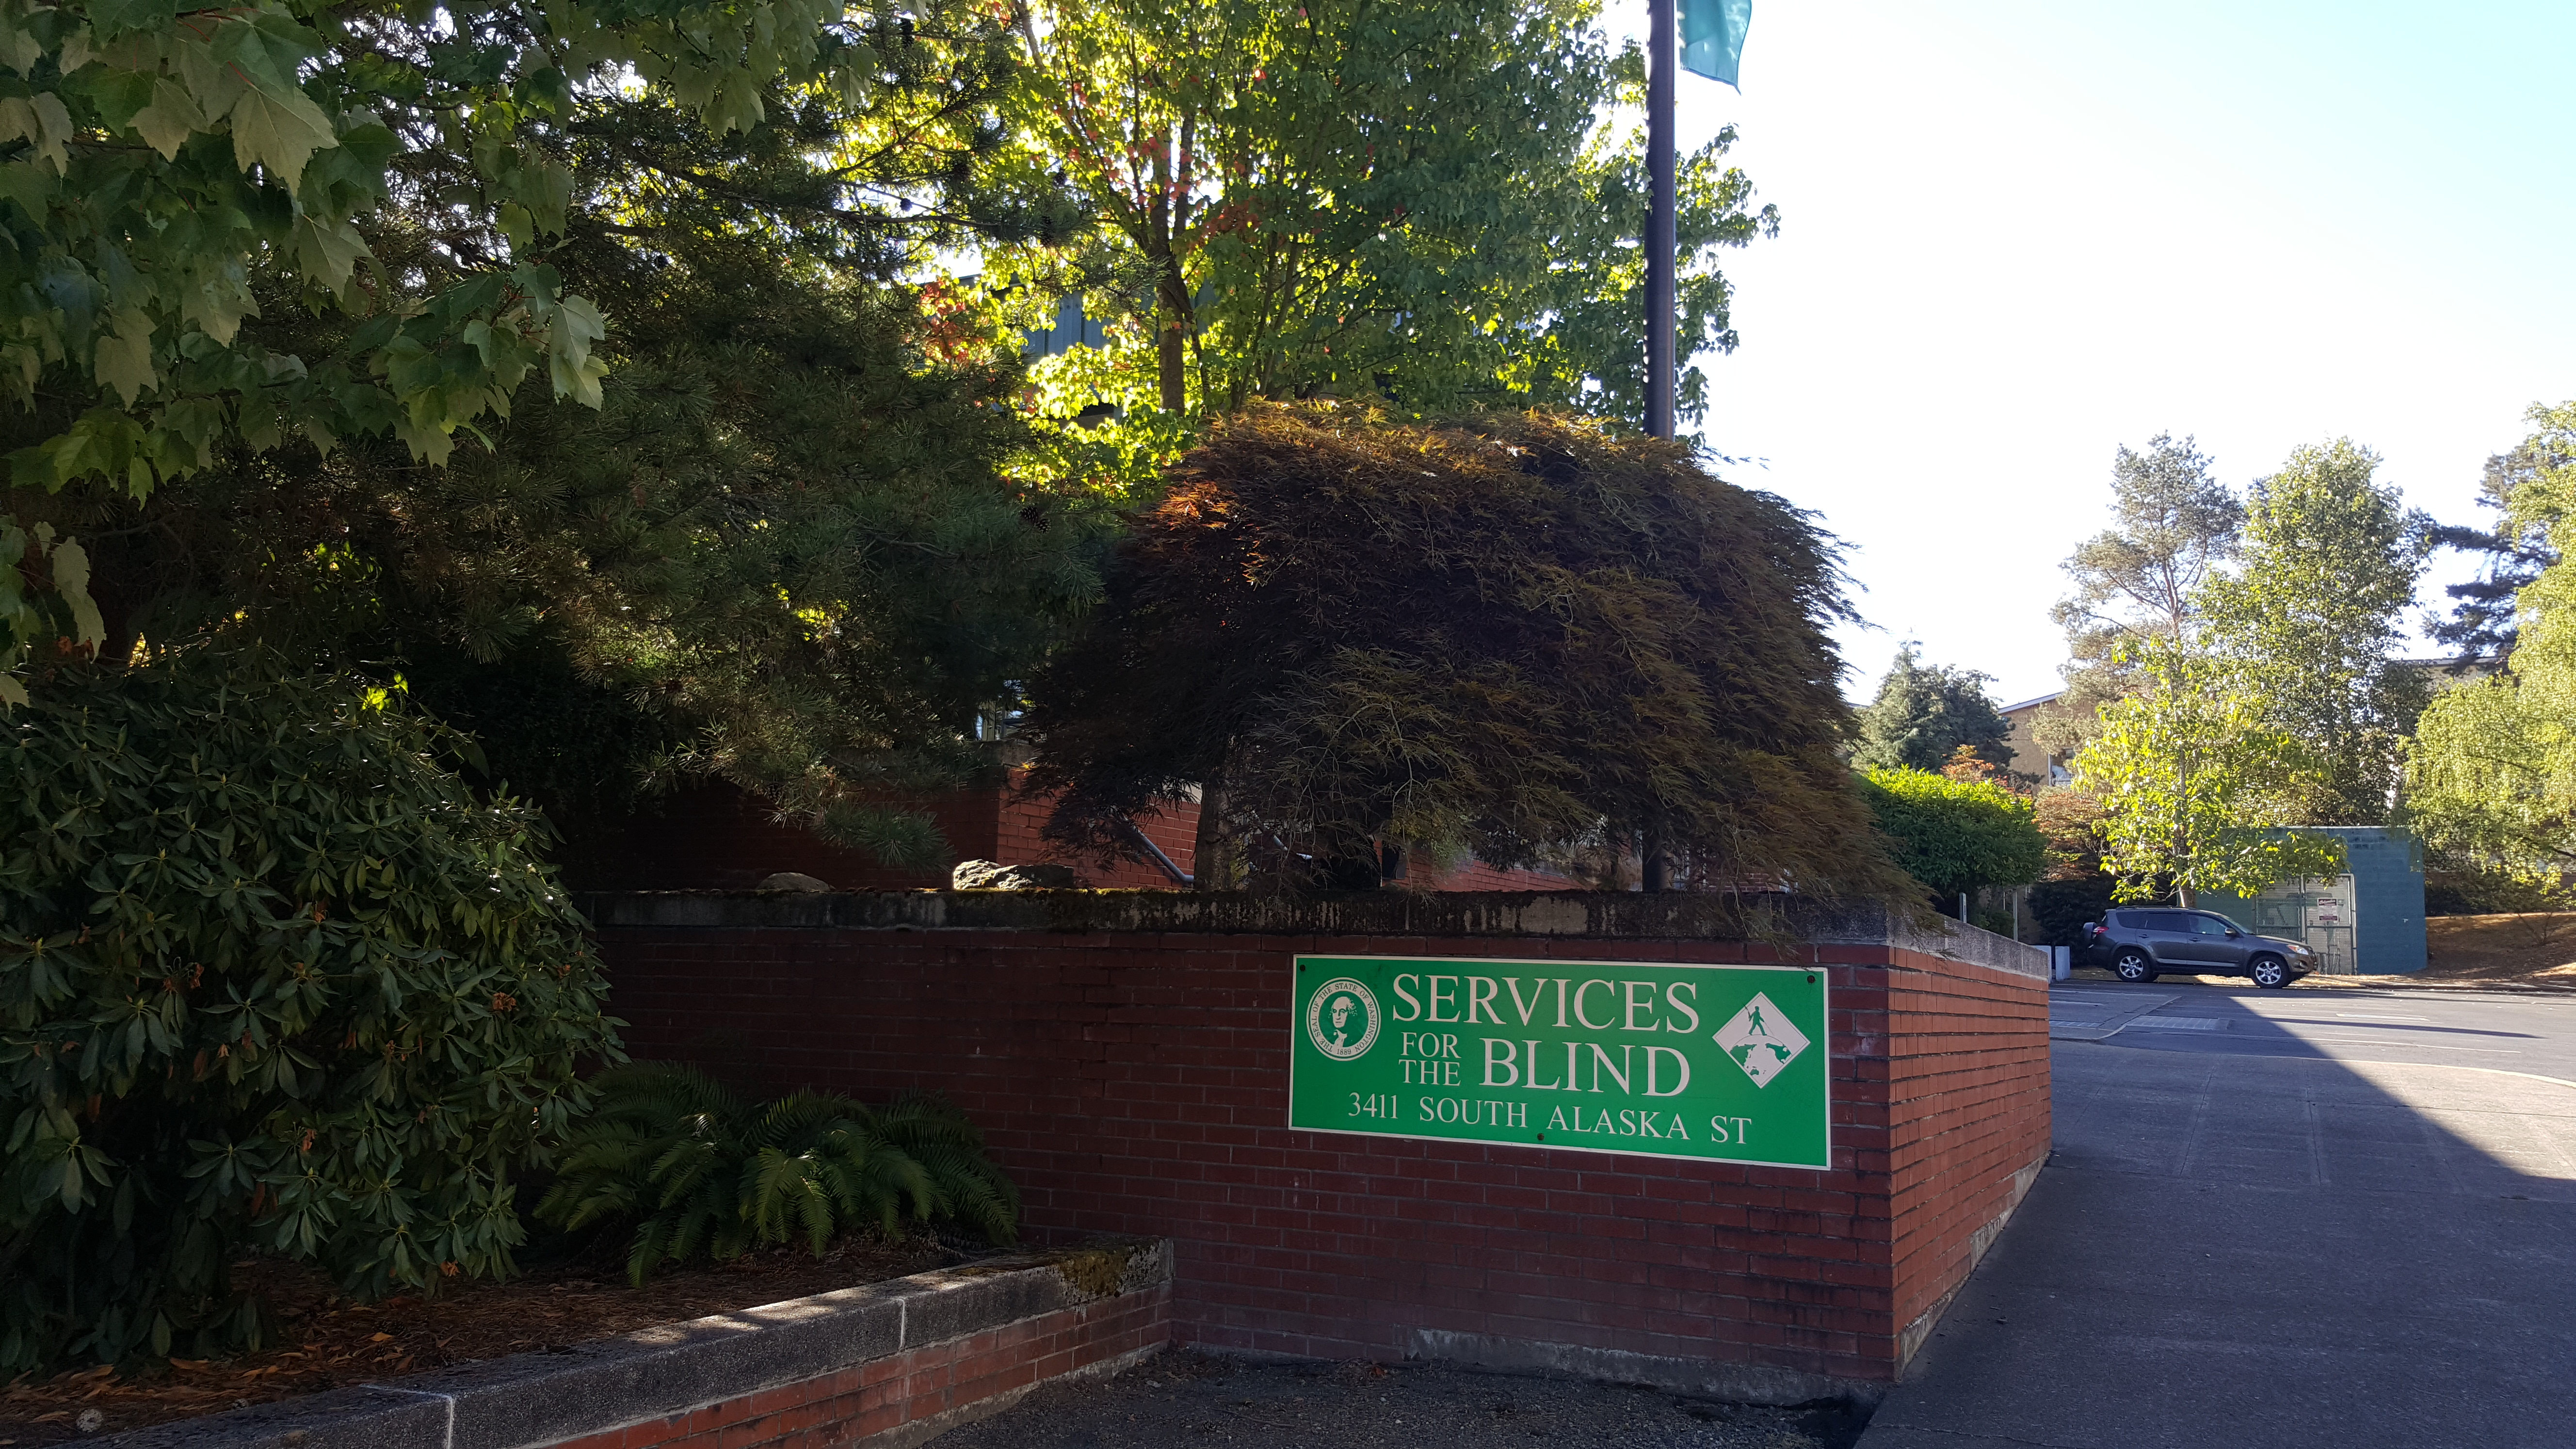 Exterior of Department of Services for the Blind's Seattle Office on a sunny day.  It is a red brick building with flowering bushes and shrubs in front.